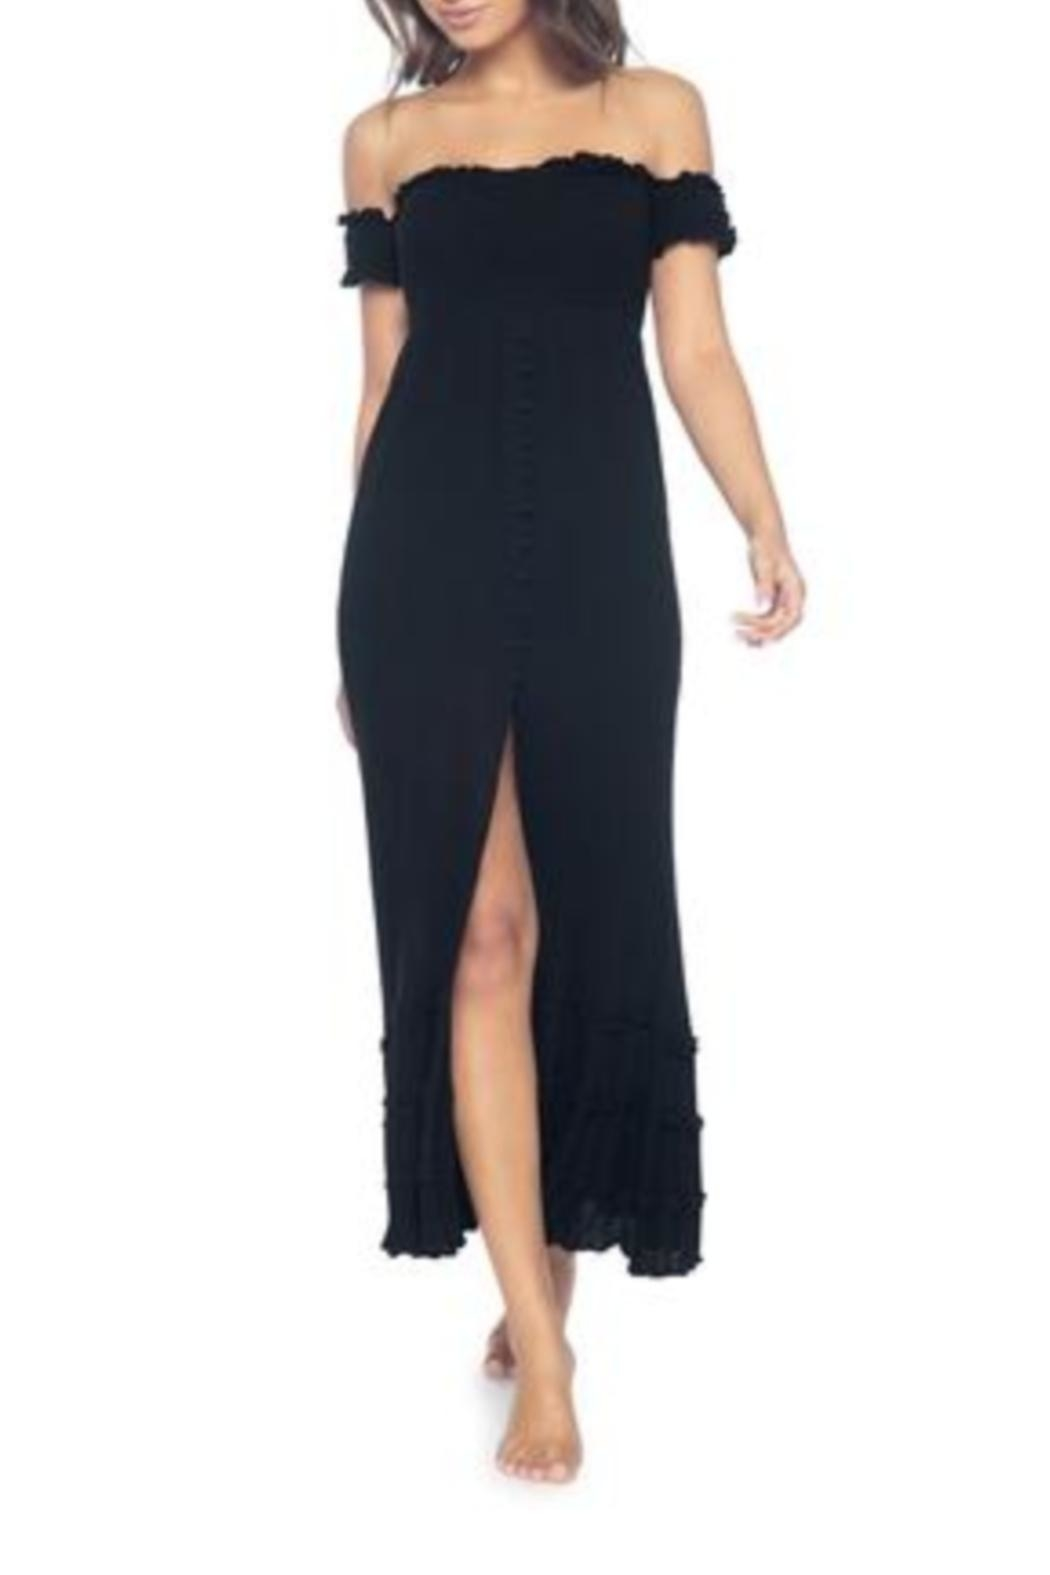 PilyQ Mishell Off-The-Shoulder Dress - Main Image